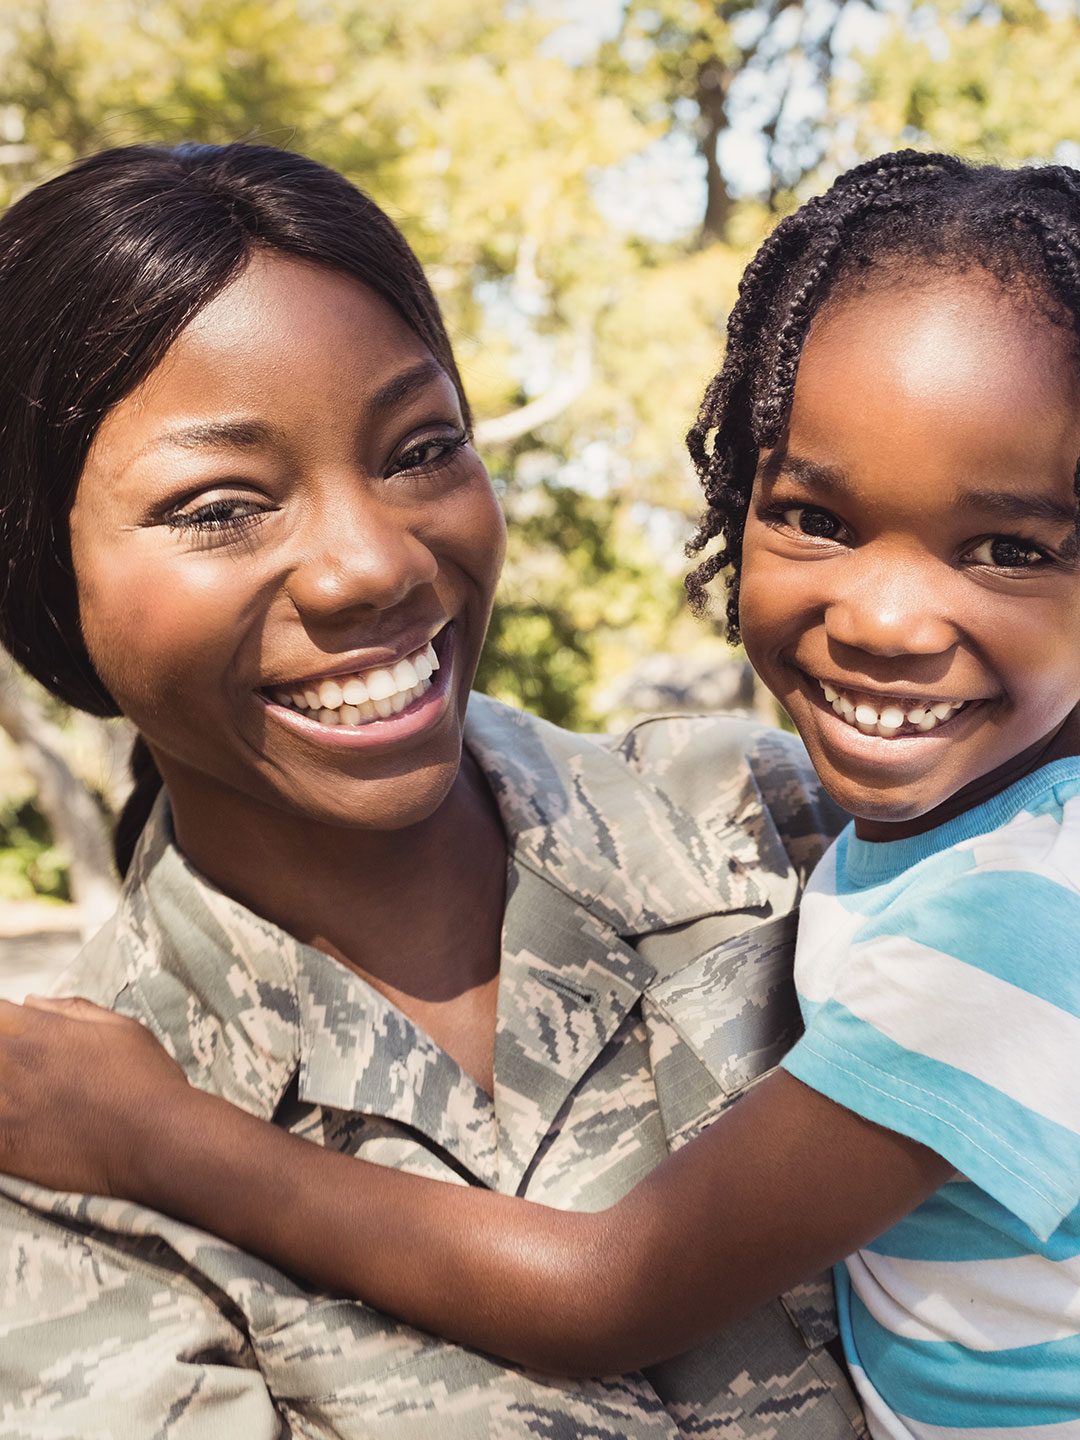 Military mom in fatigues holding young daughter in her arms